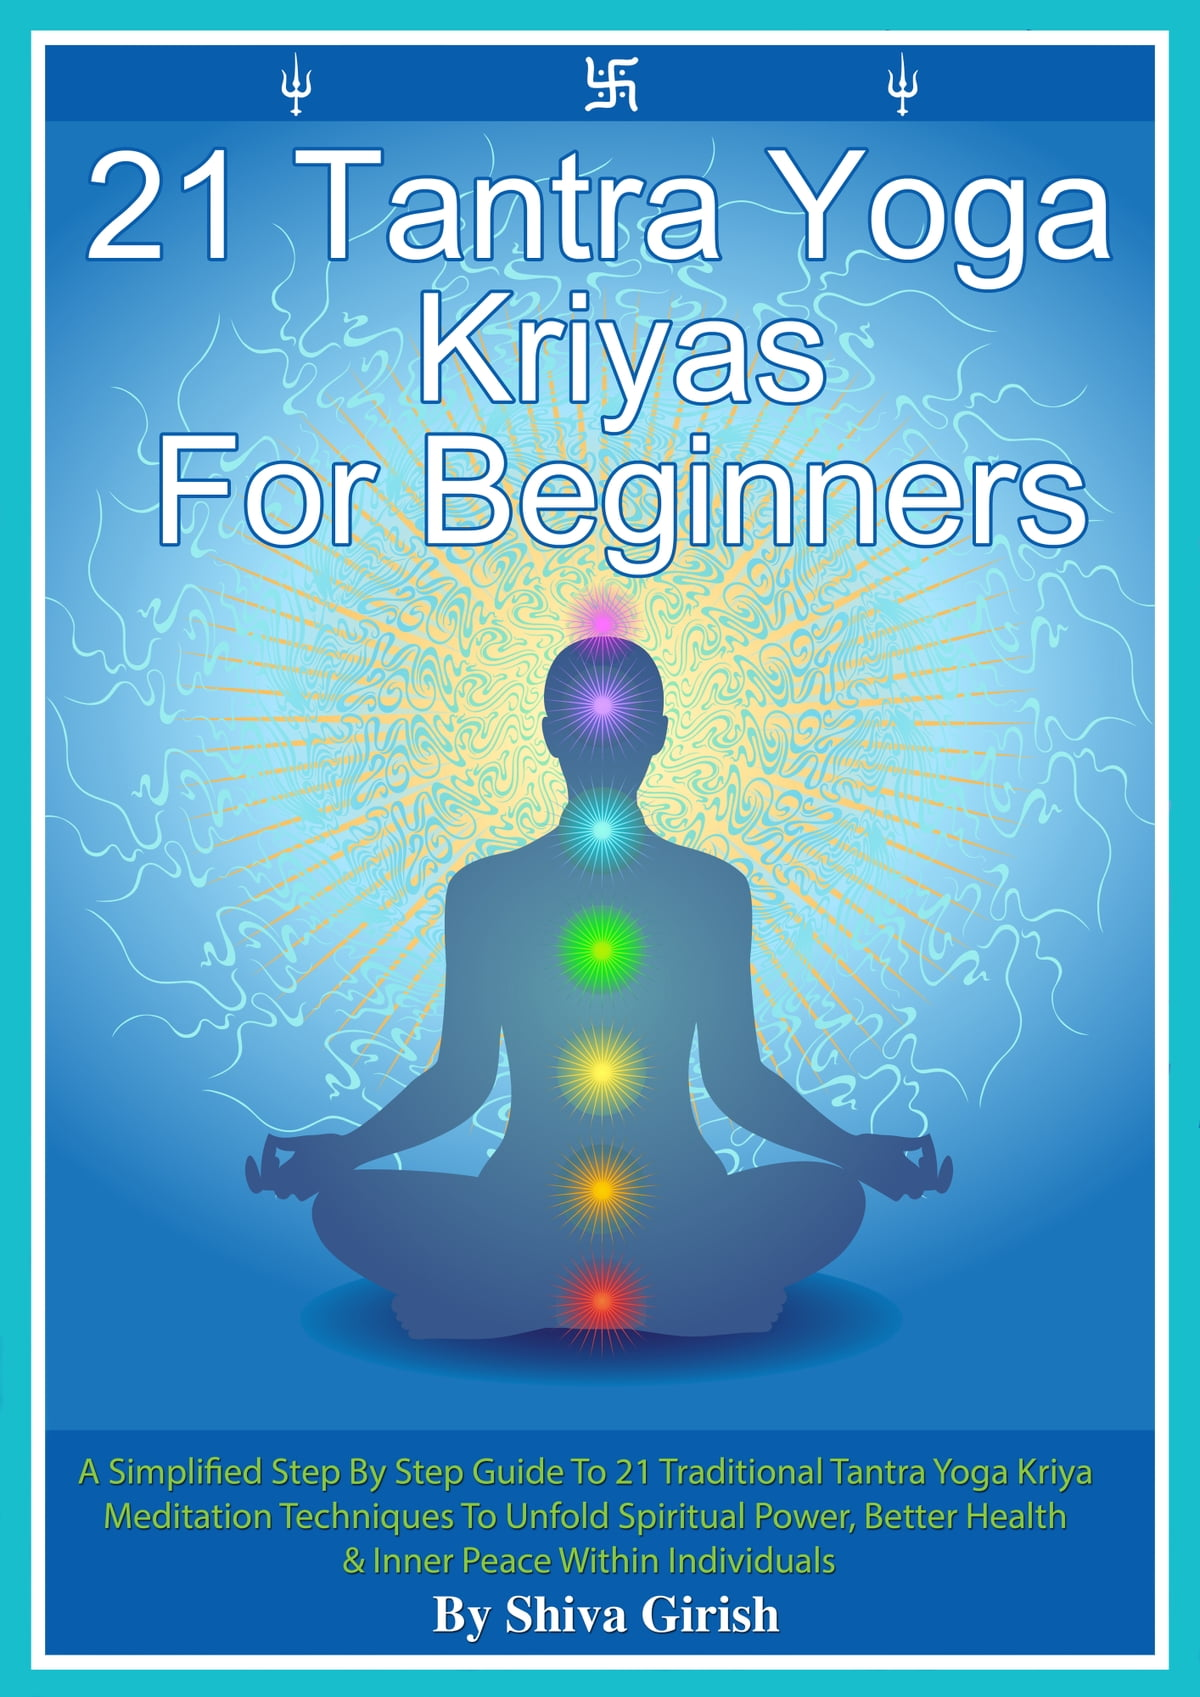 Libros De Tantra 21 Tantra Yoga Kriyas For Beginners A Simplified Step By Step Guide To 21 Traditional Tantra Yoga Kriya Meditation Techniques To Unfold Spiritual